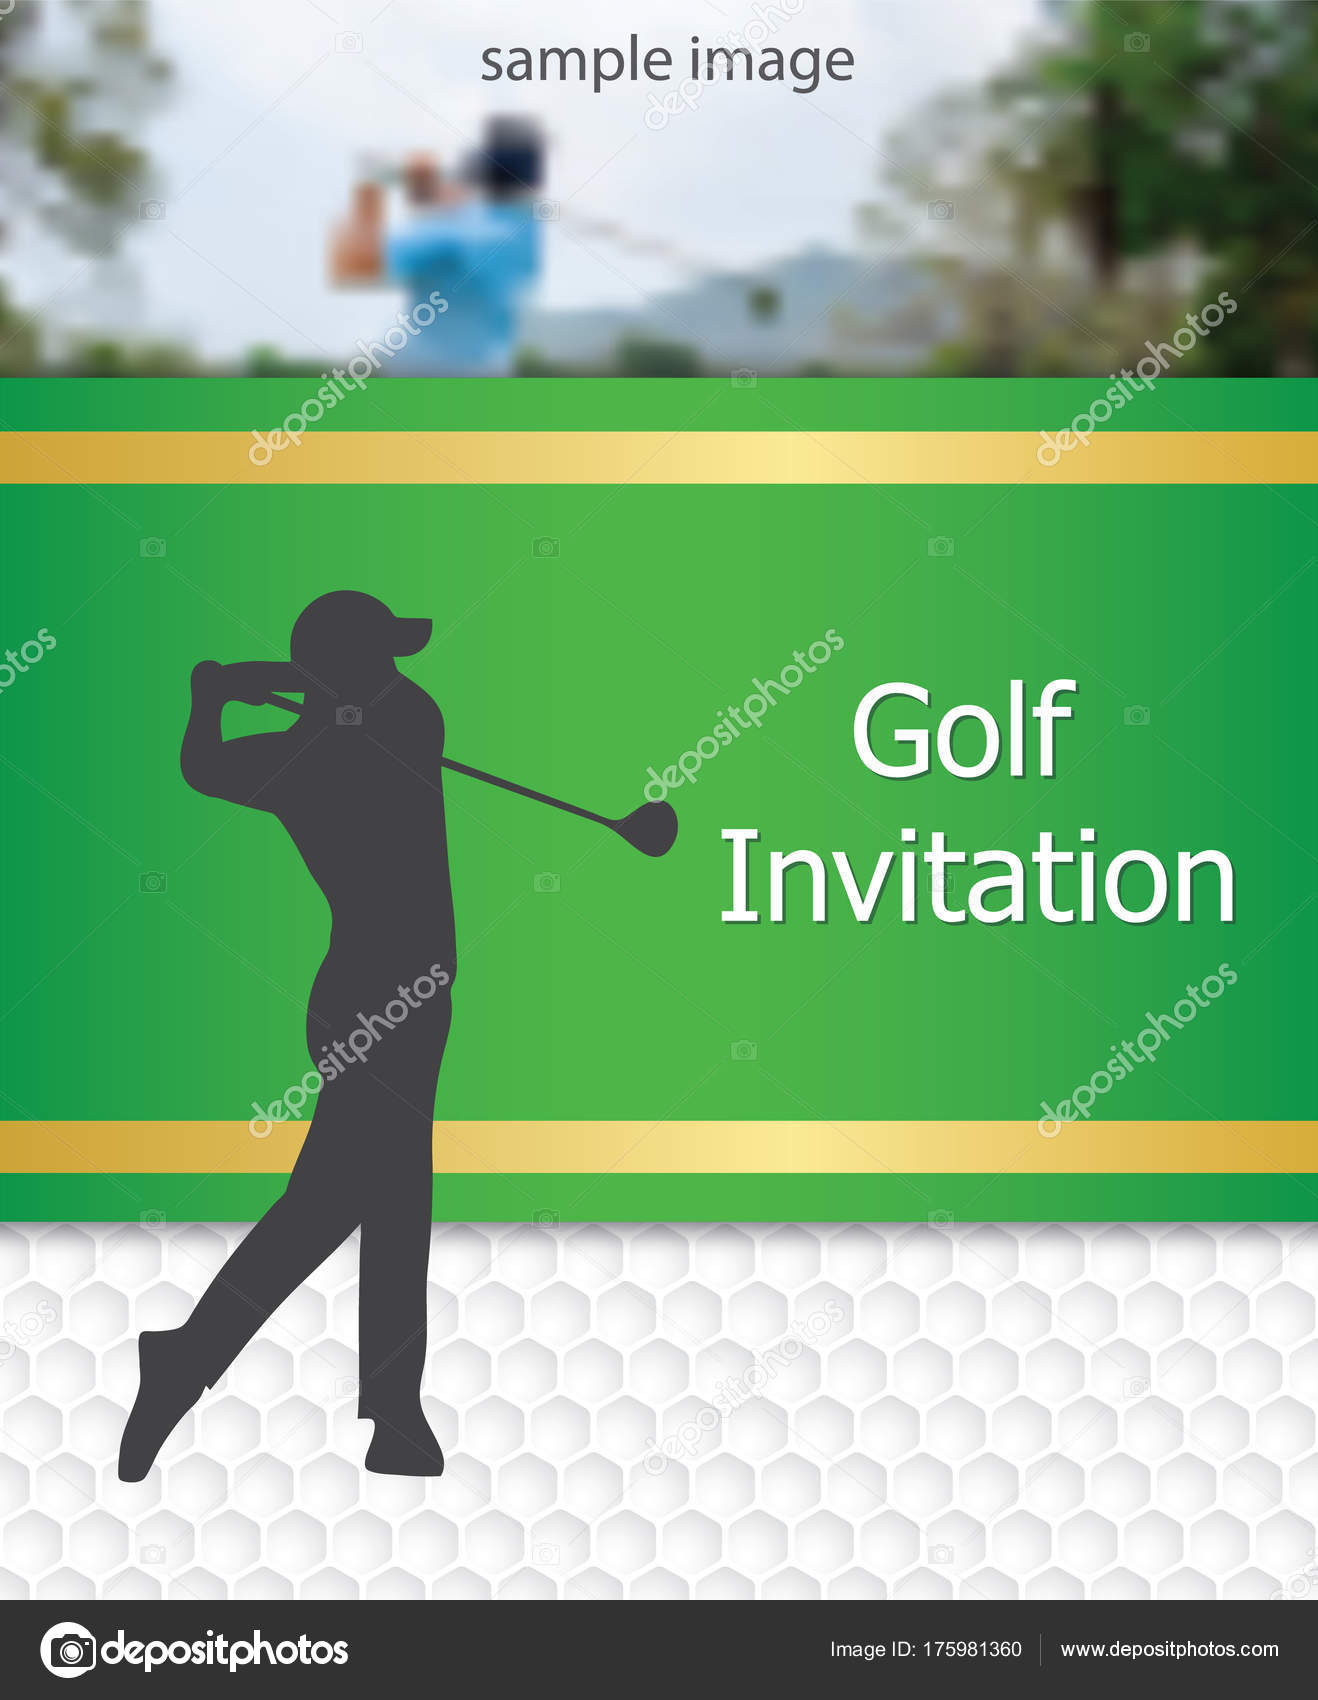 Golf tournament invitation flyer template graphic design golfer golf tournament invitation flyer template graphic design golfer swinging on golfball on golf ball pattern texture with sample image vector by mantinov stopboris Images